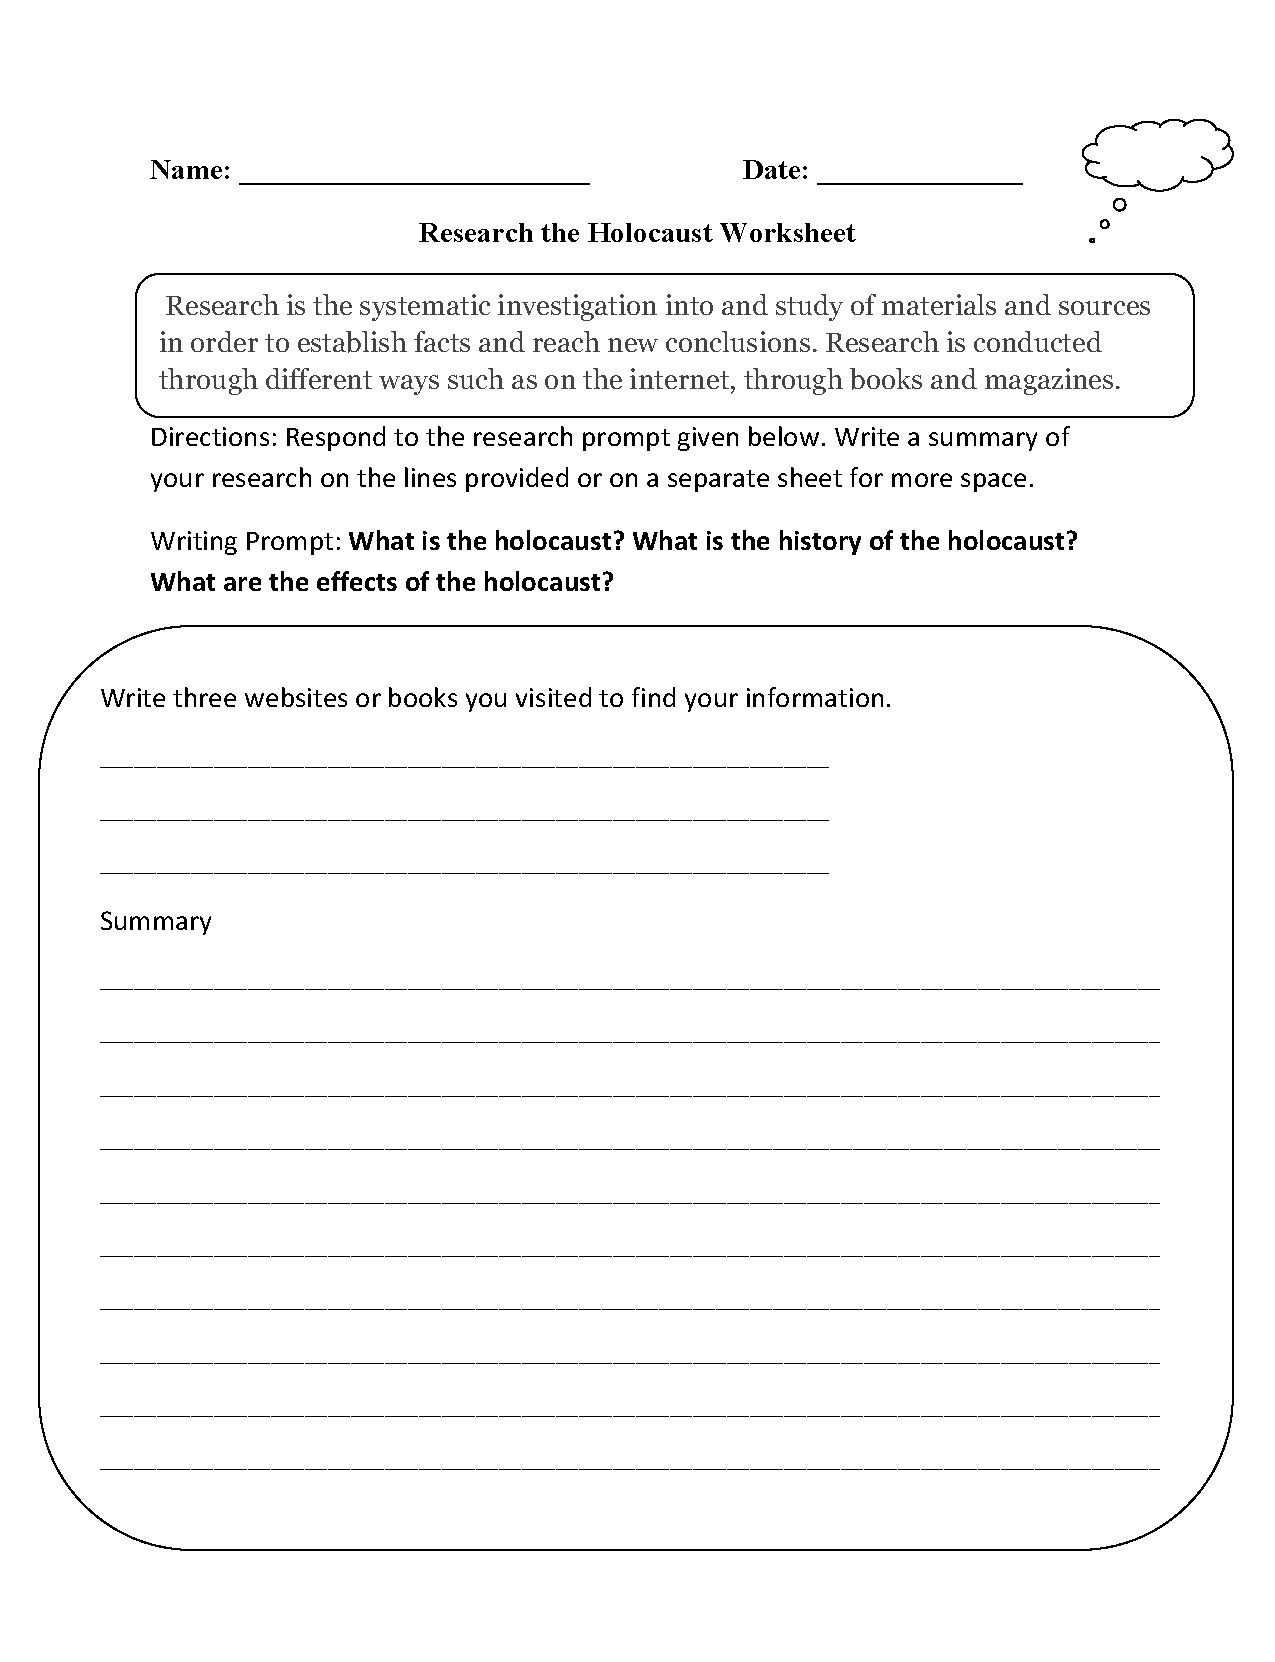 worksheet Holocaust Worksheet research worksheets holocaust worksheet worksheet